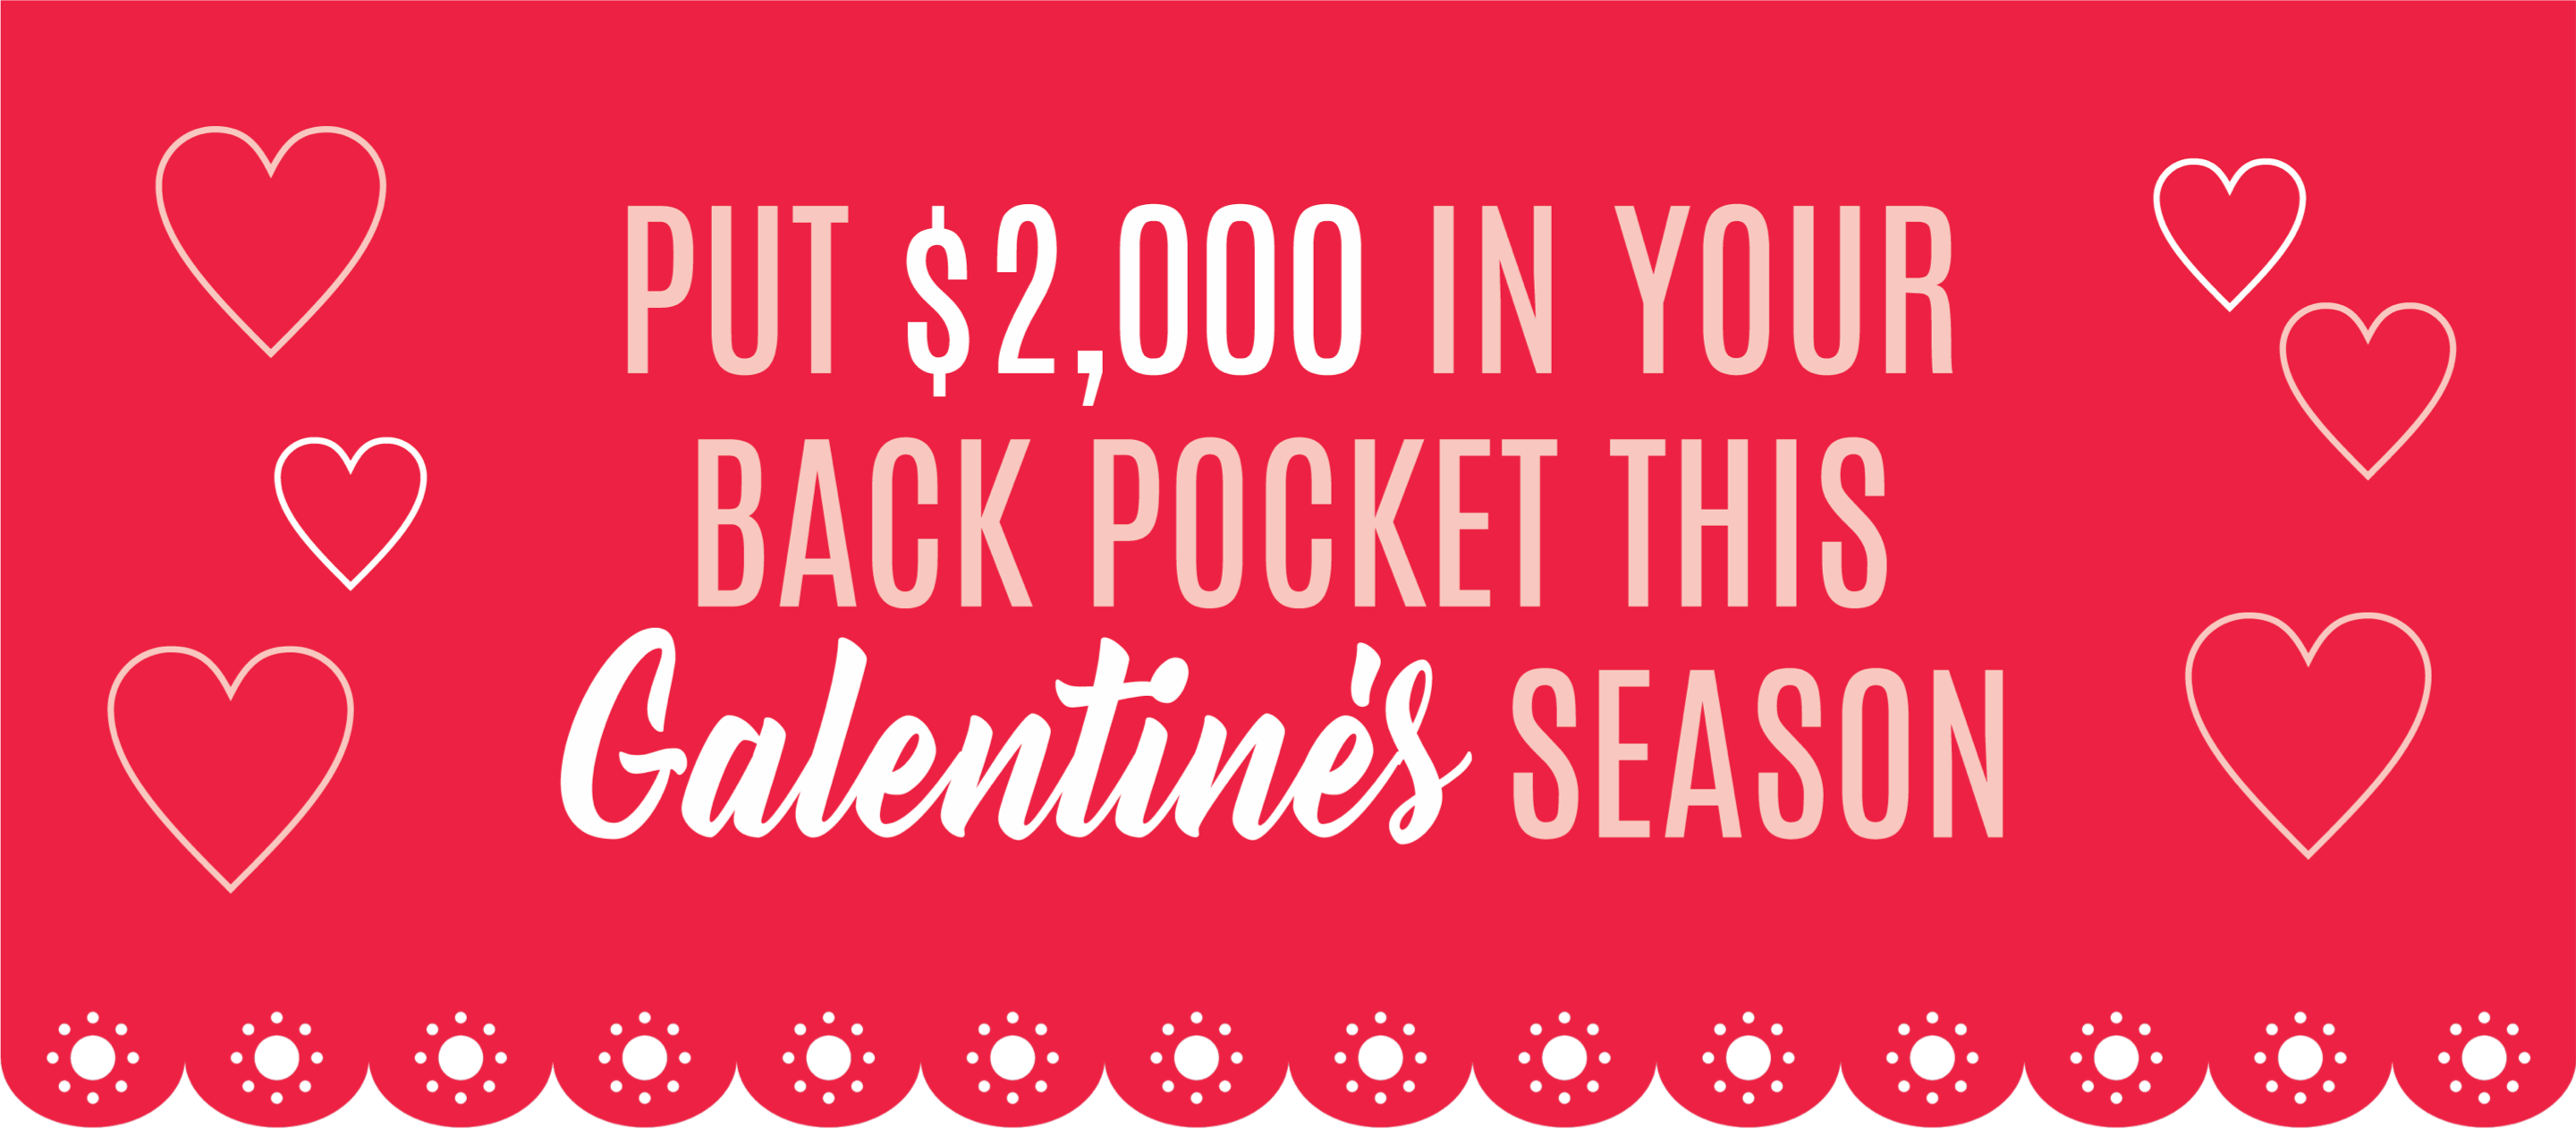 Put $2,000 in your back pocket this Galentine's season